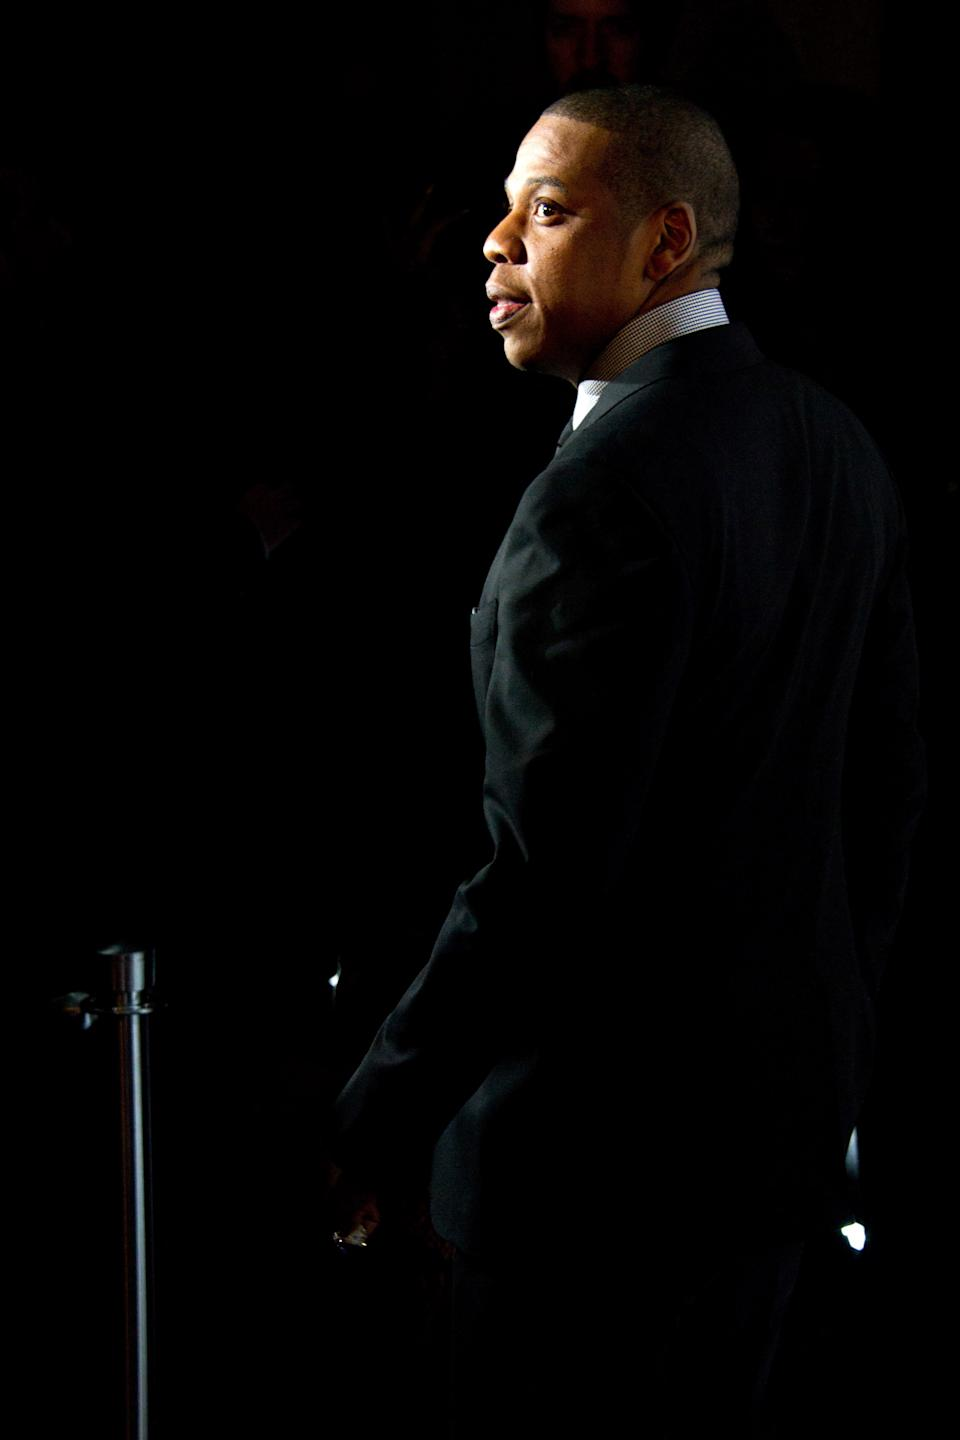 FILE - In this Jan. 19, 2012 file photo, Jay-Z attends the grand re-opening of his 40/40 Club, in New York. Jay-Z will kick off the South By Southwest festival with a performance on Monday, March 12, in Austin, Texas.  (AP Photo/Charles Sykes, file)